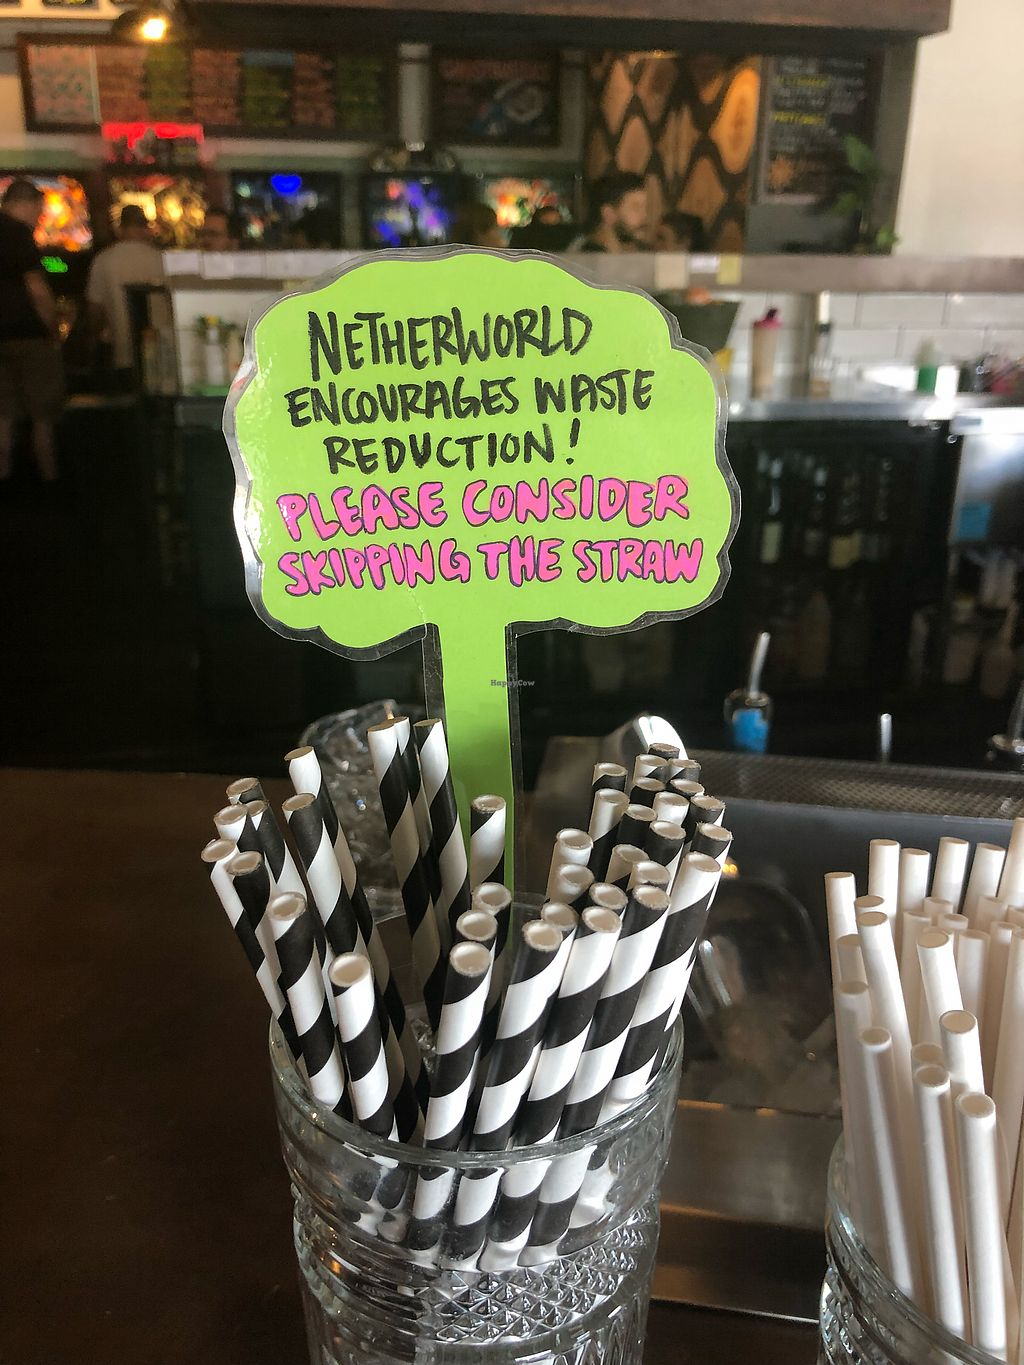 """Photo of Netherworld  by <a href=""""/members/profile/ben_eitel"""">ben_eitel</a> <br/>Environmentally responsible beyond just the animals! <br/> January 12, 2018  - <a href='/contact/abuse/image/86165/345652'>Report</a>"""